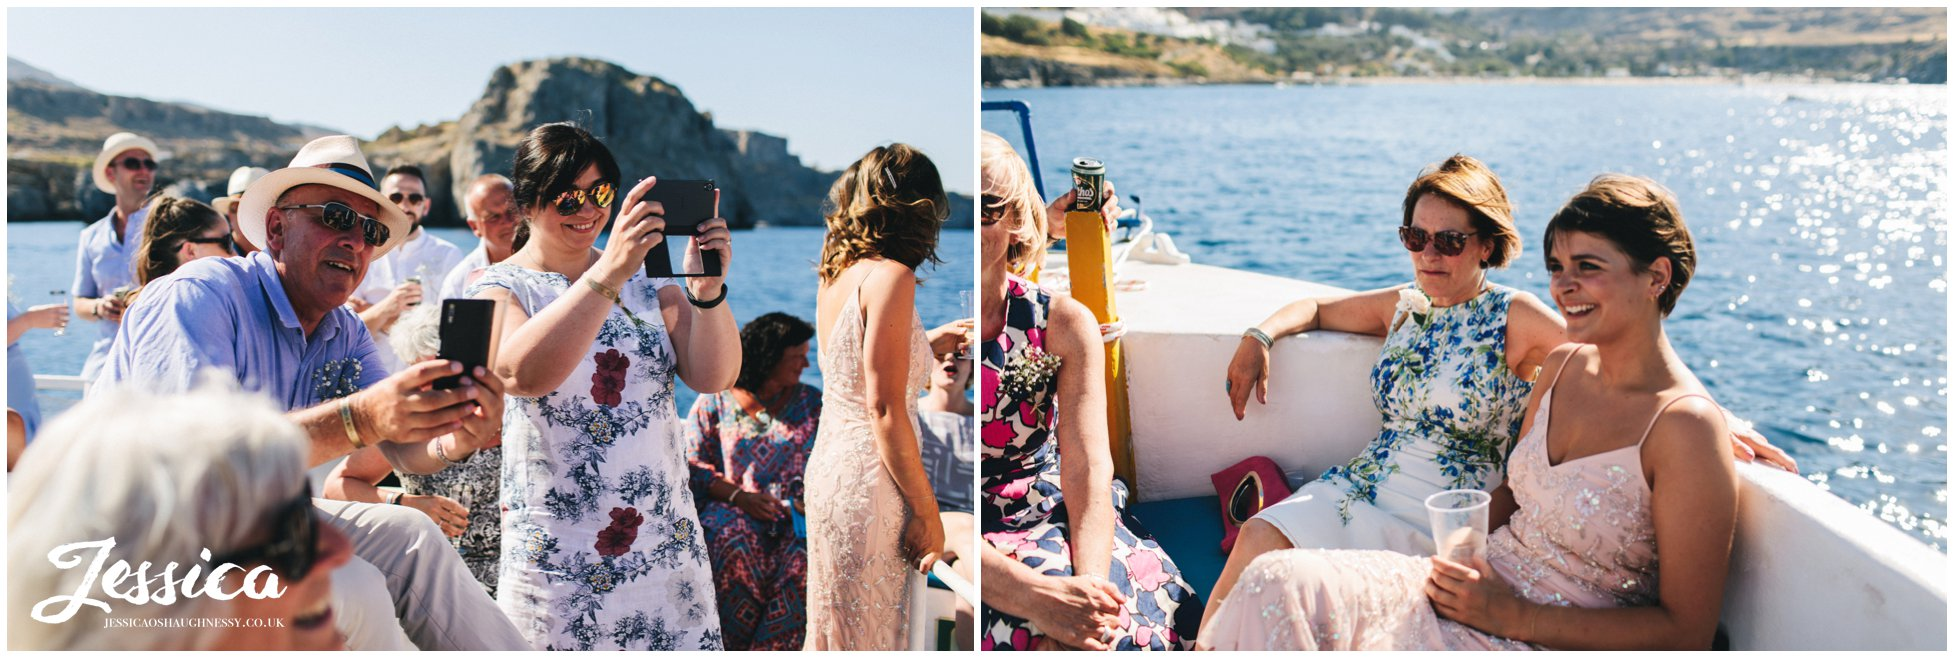 wedding guests enjoy the boat trip around st pauls bay